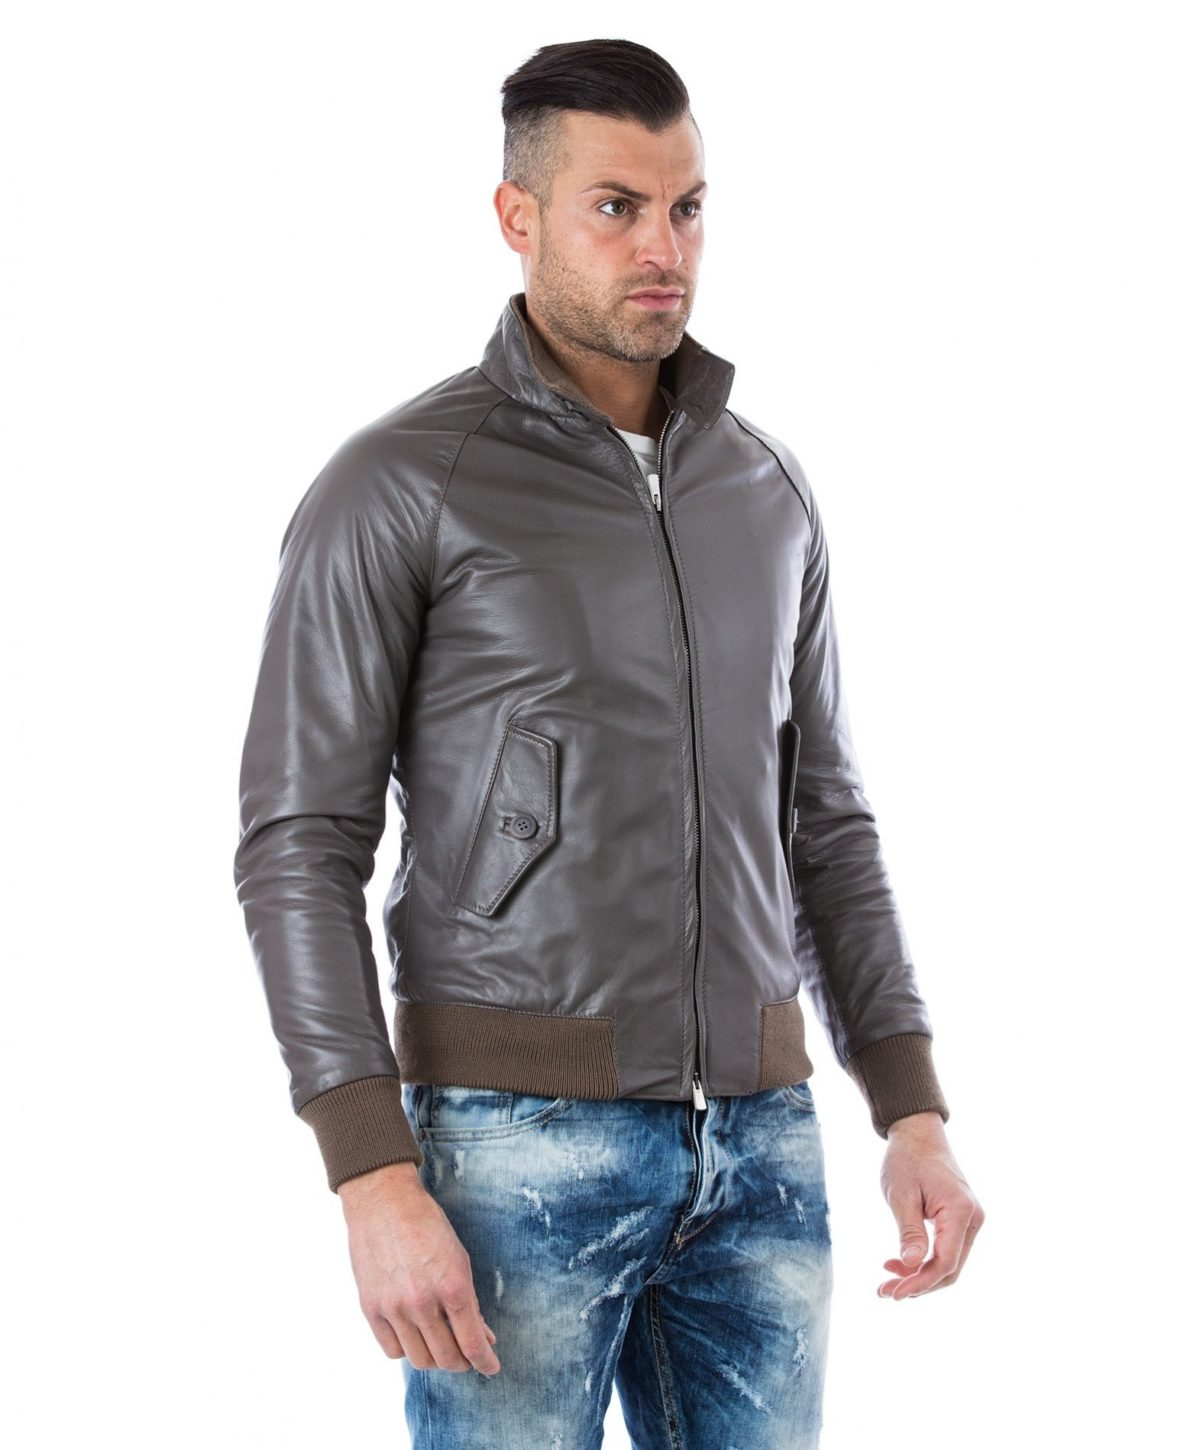 man-leather-jacket-lamb-leather-style-bomber-central-zip-black-color-br (1)